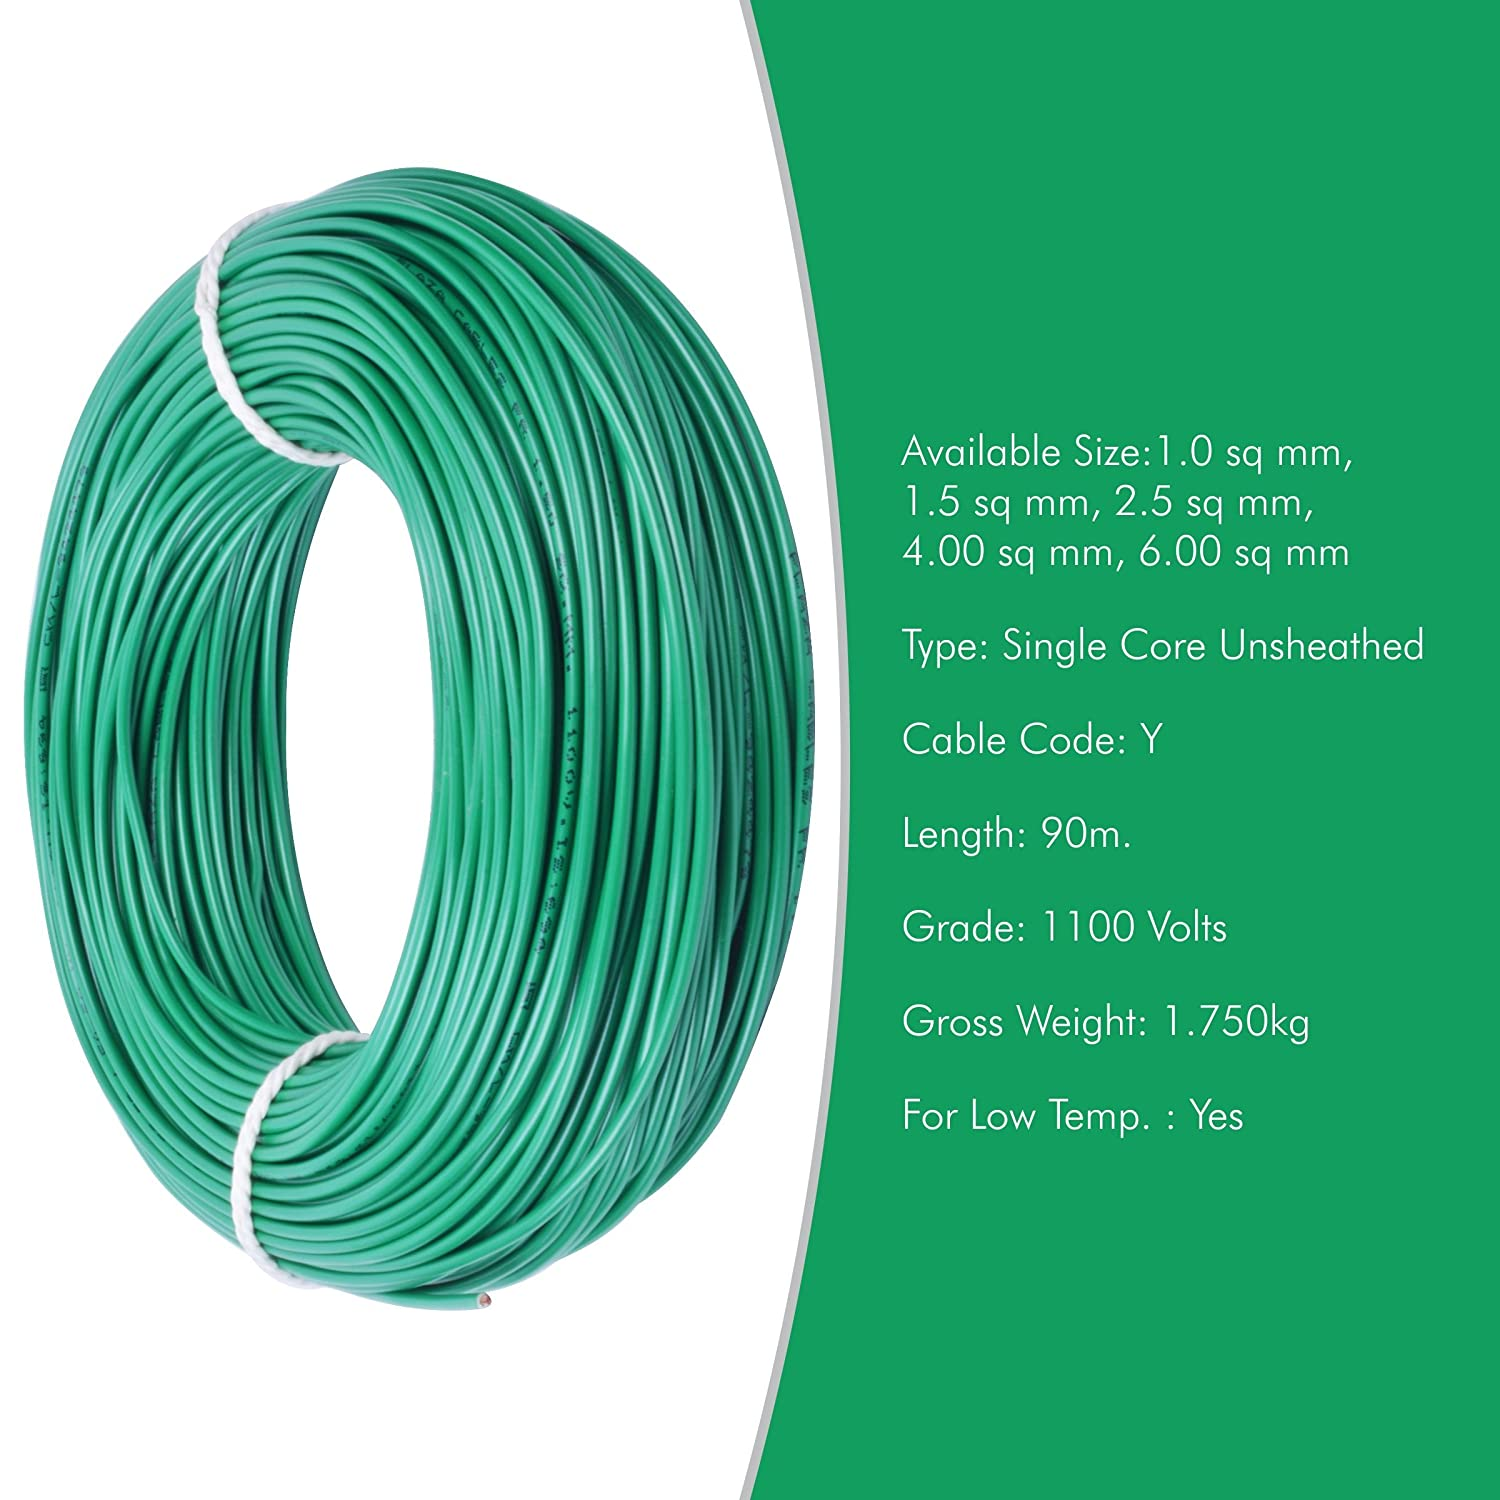 Plaza Cables 0.75 sq mm Copper PVC Insulated Electrical Wire/Cable ...